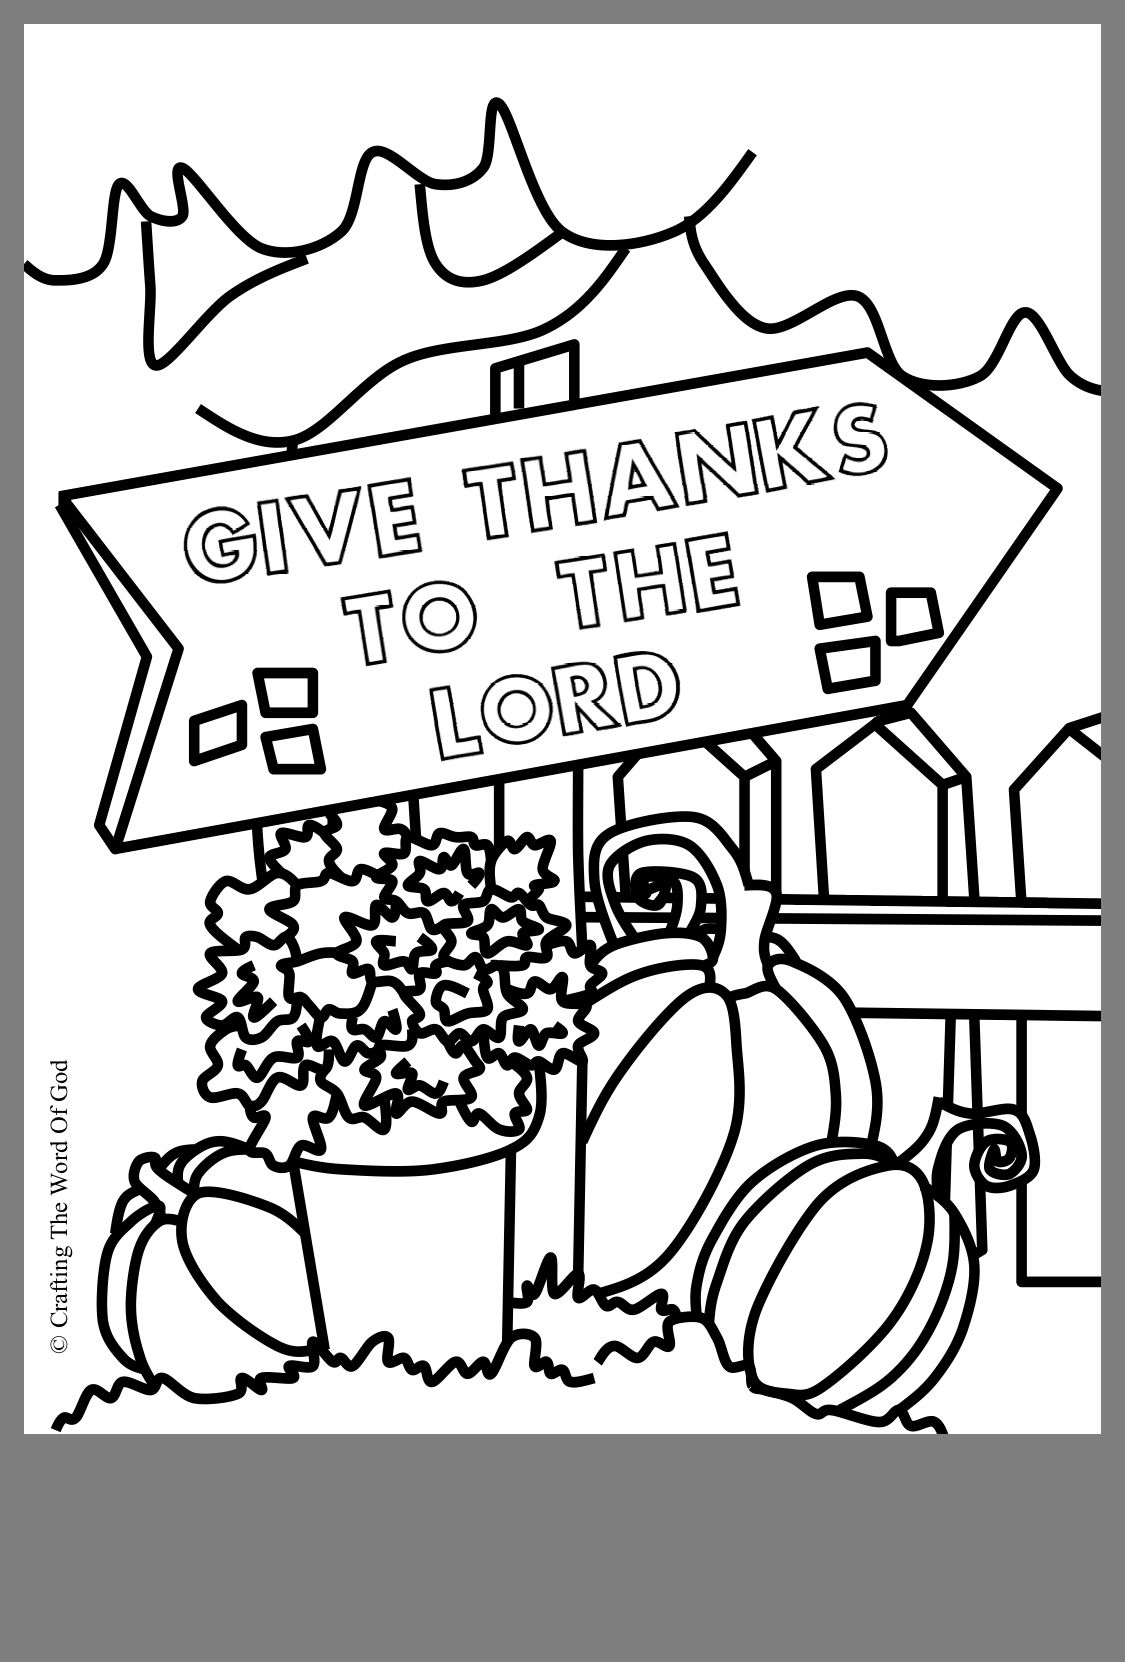 sunday school coloring materials pin by cindy ortegon on sunday school sunday school materials coloring school sunday